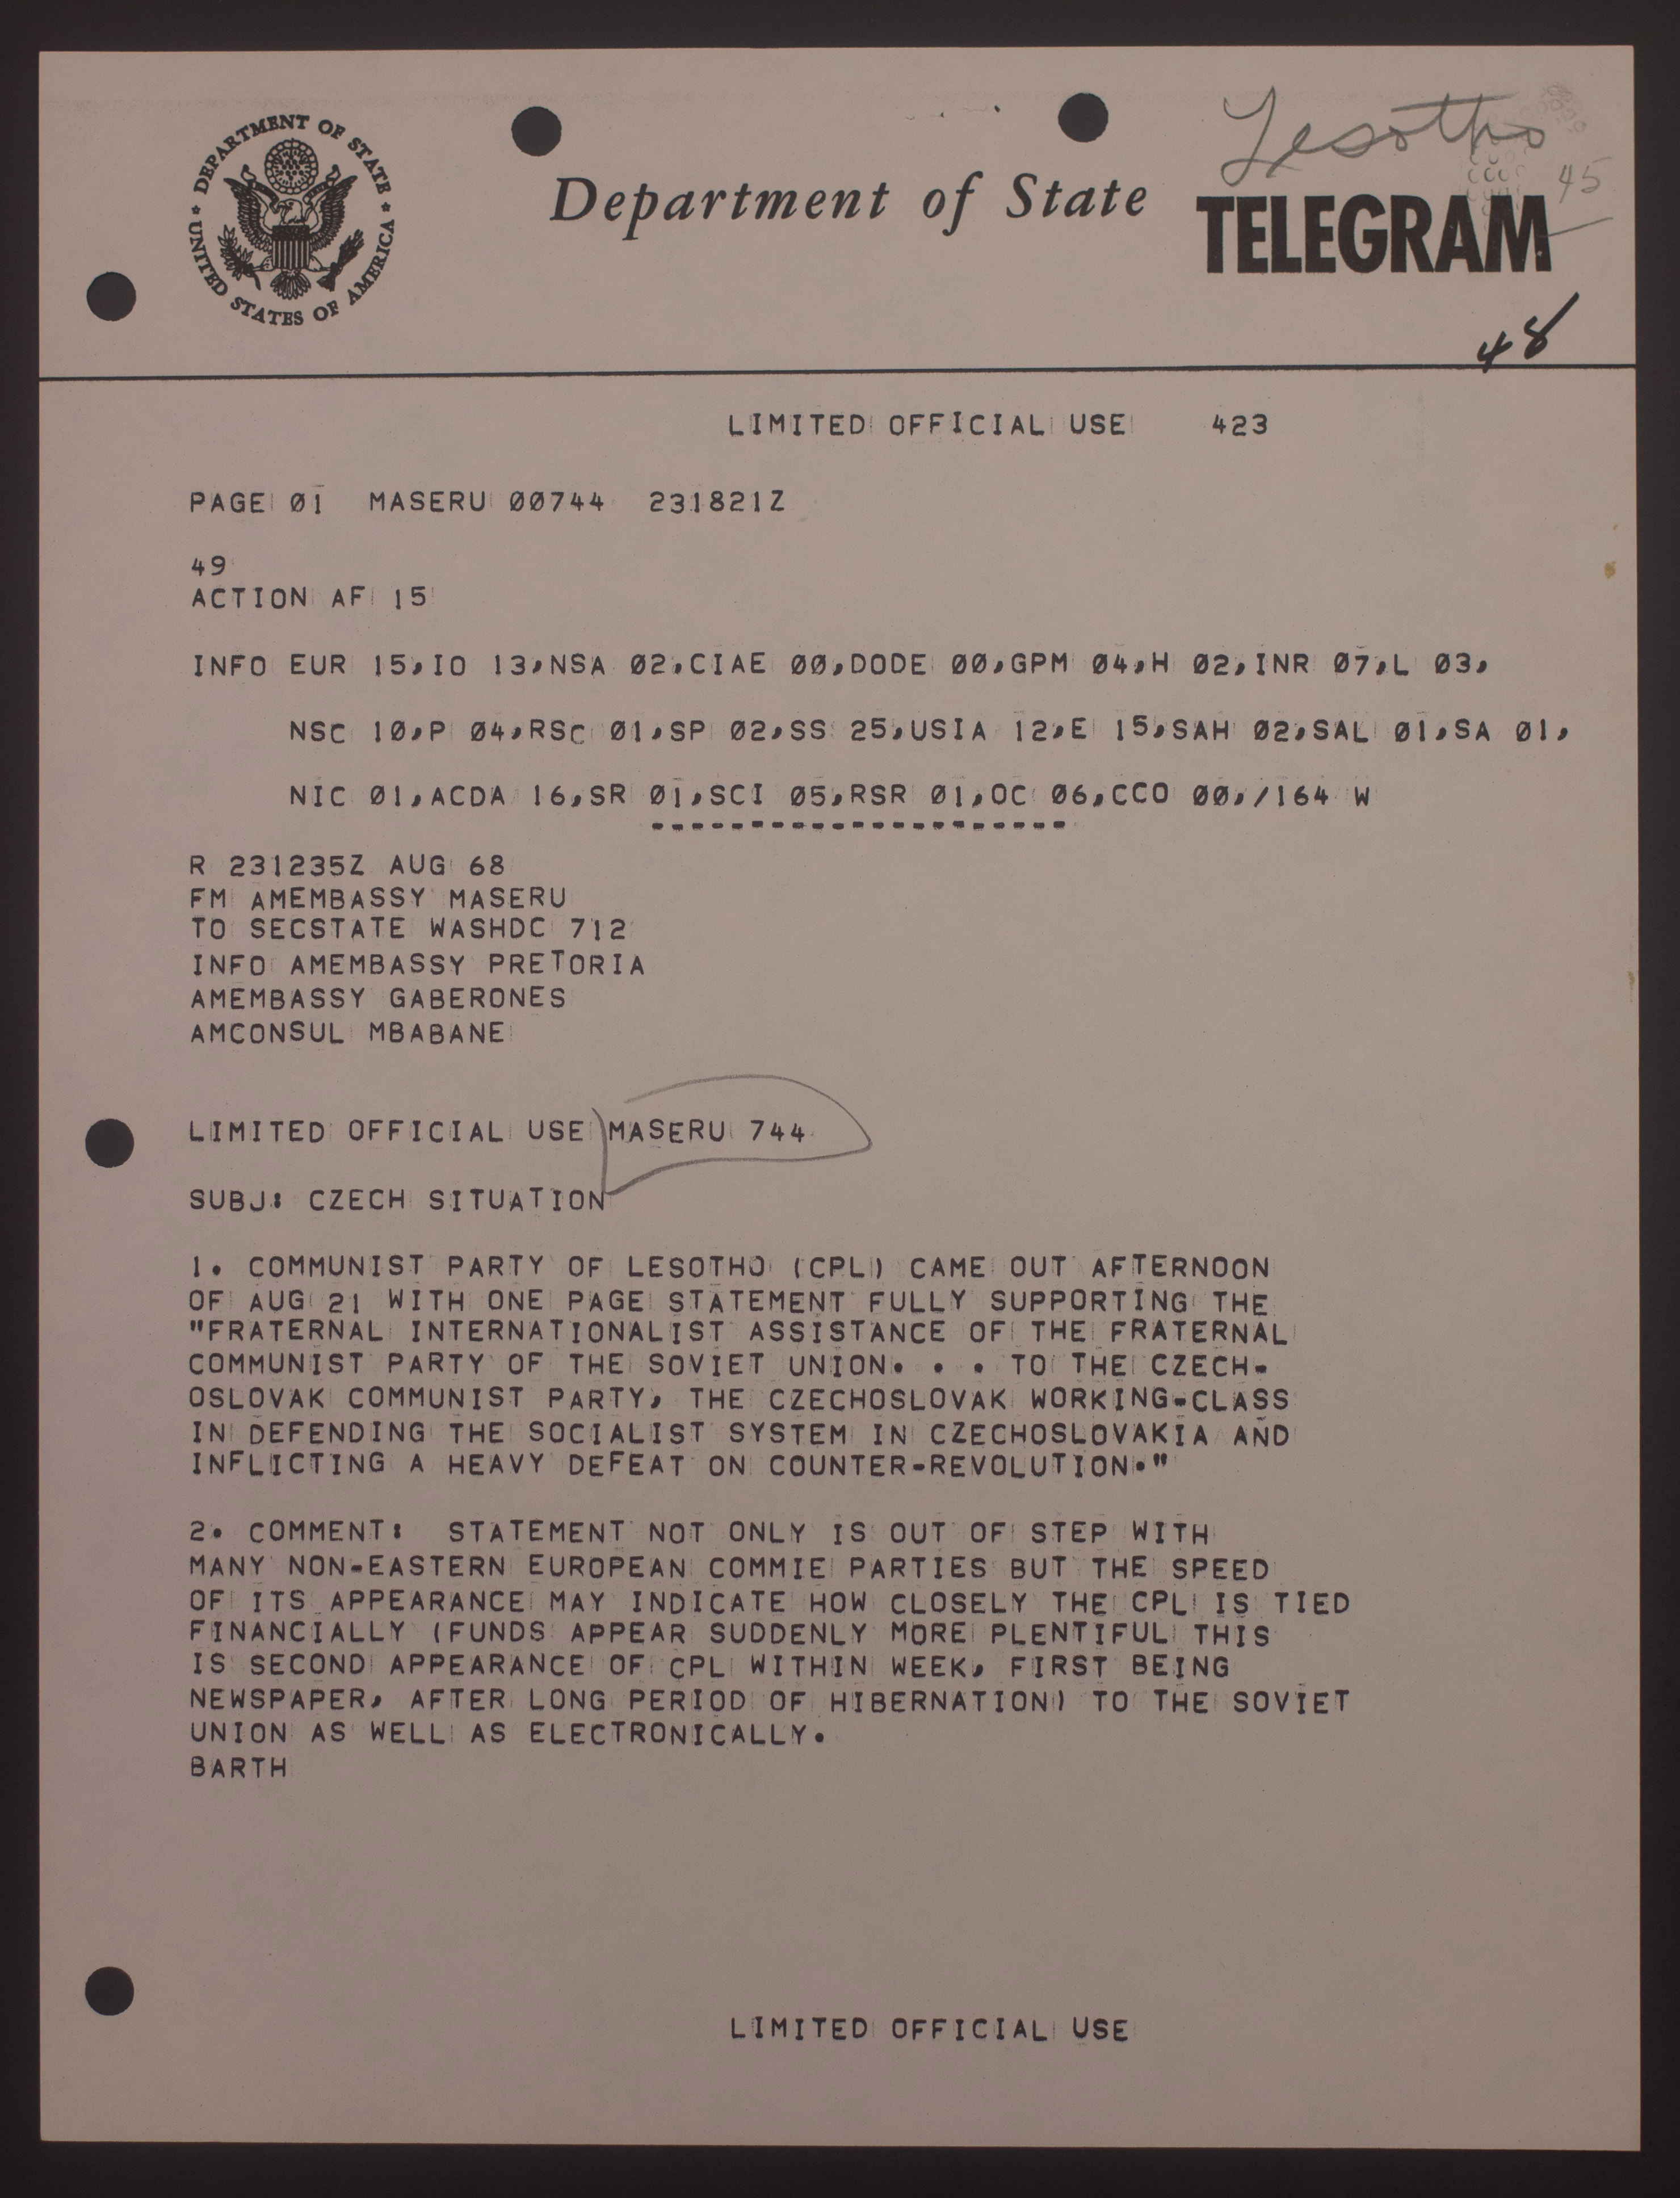 Telegrams Sent From The U.S. Are Asking For The Reaction For African  Countries To The Soviet Occupation. Telegrams Sent From African Countries  Primarily ...